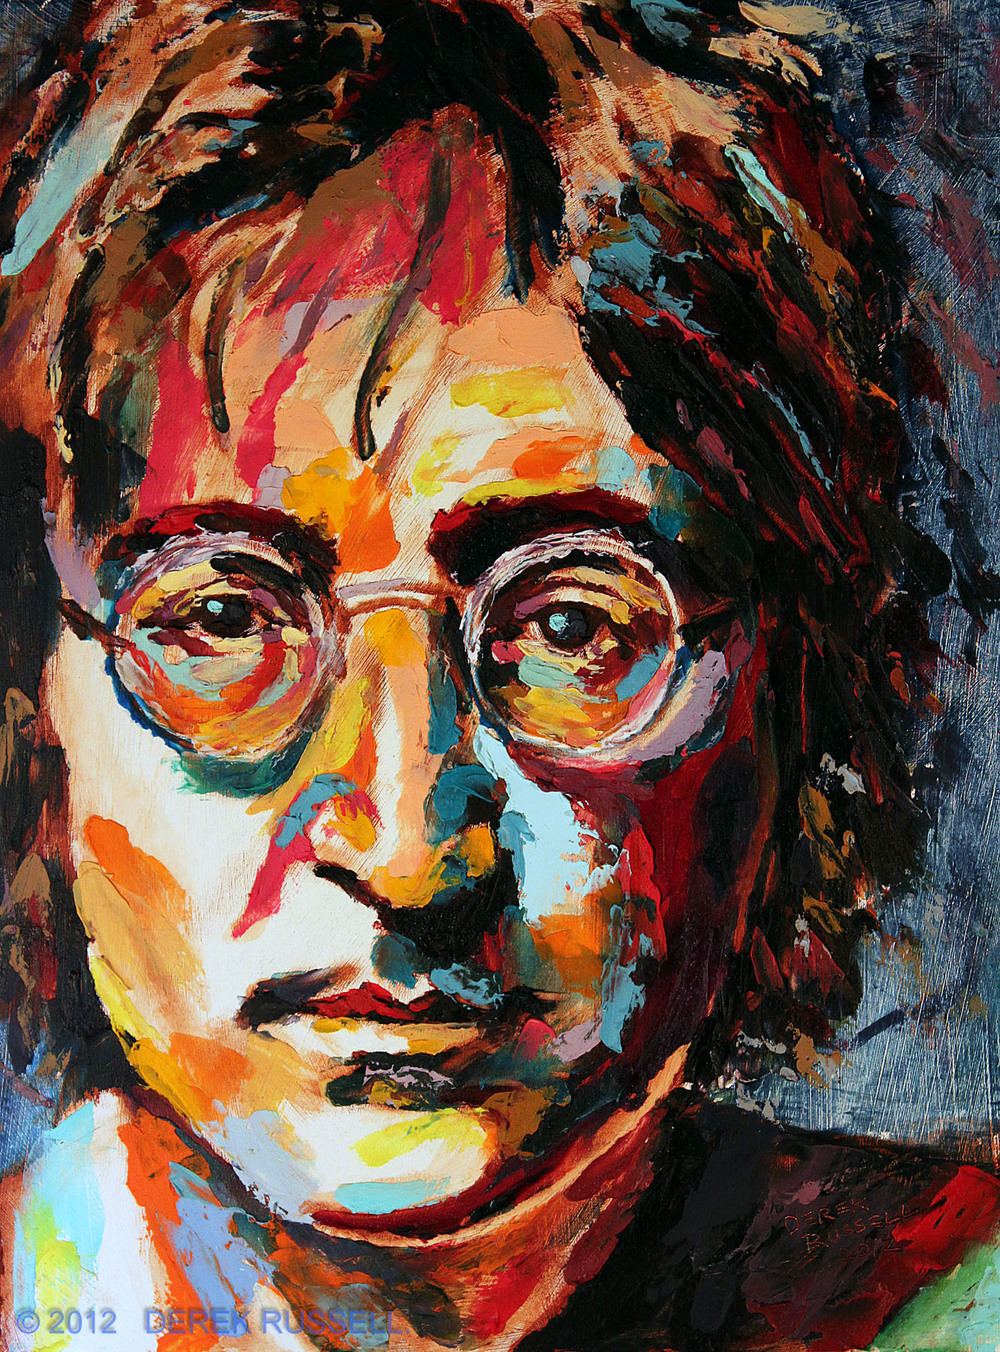 John lennon original oil painting derek russell for Call for mural artists 2014